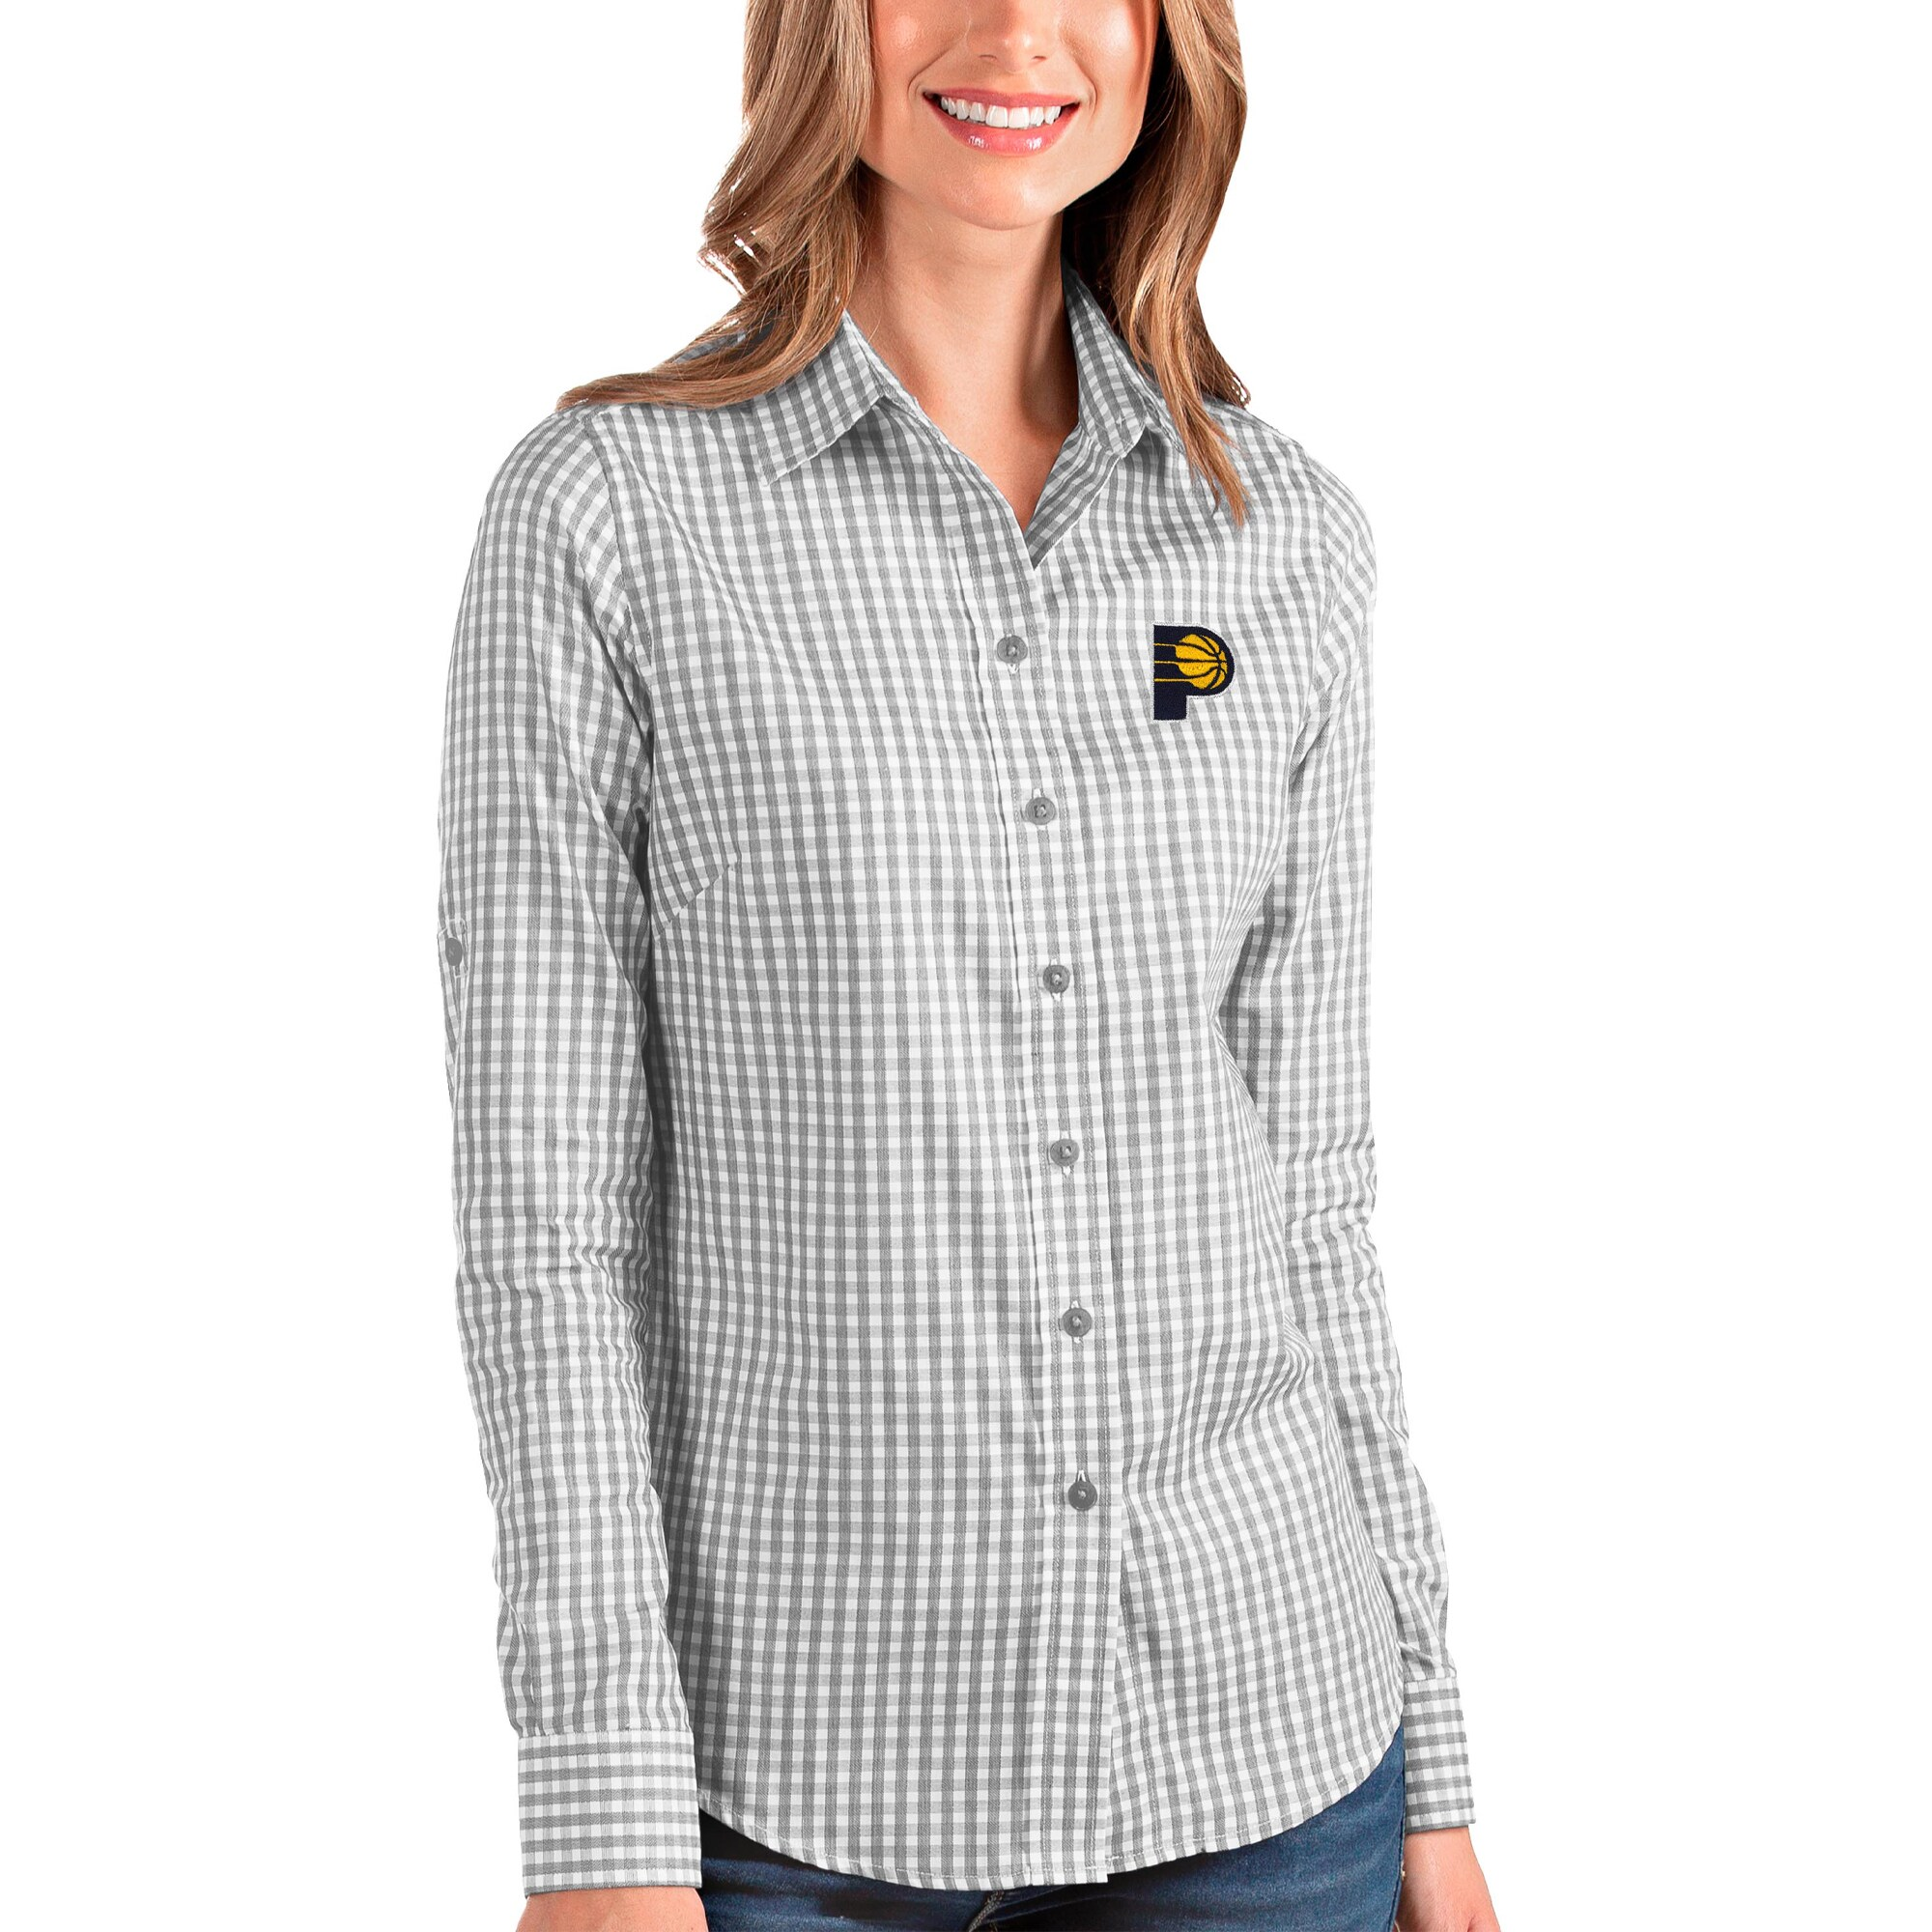 Indiana Pacers Antigua Women's Structure Button-Up Long Sleeve Shirt - Charcoal/White